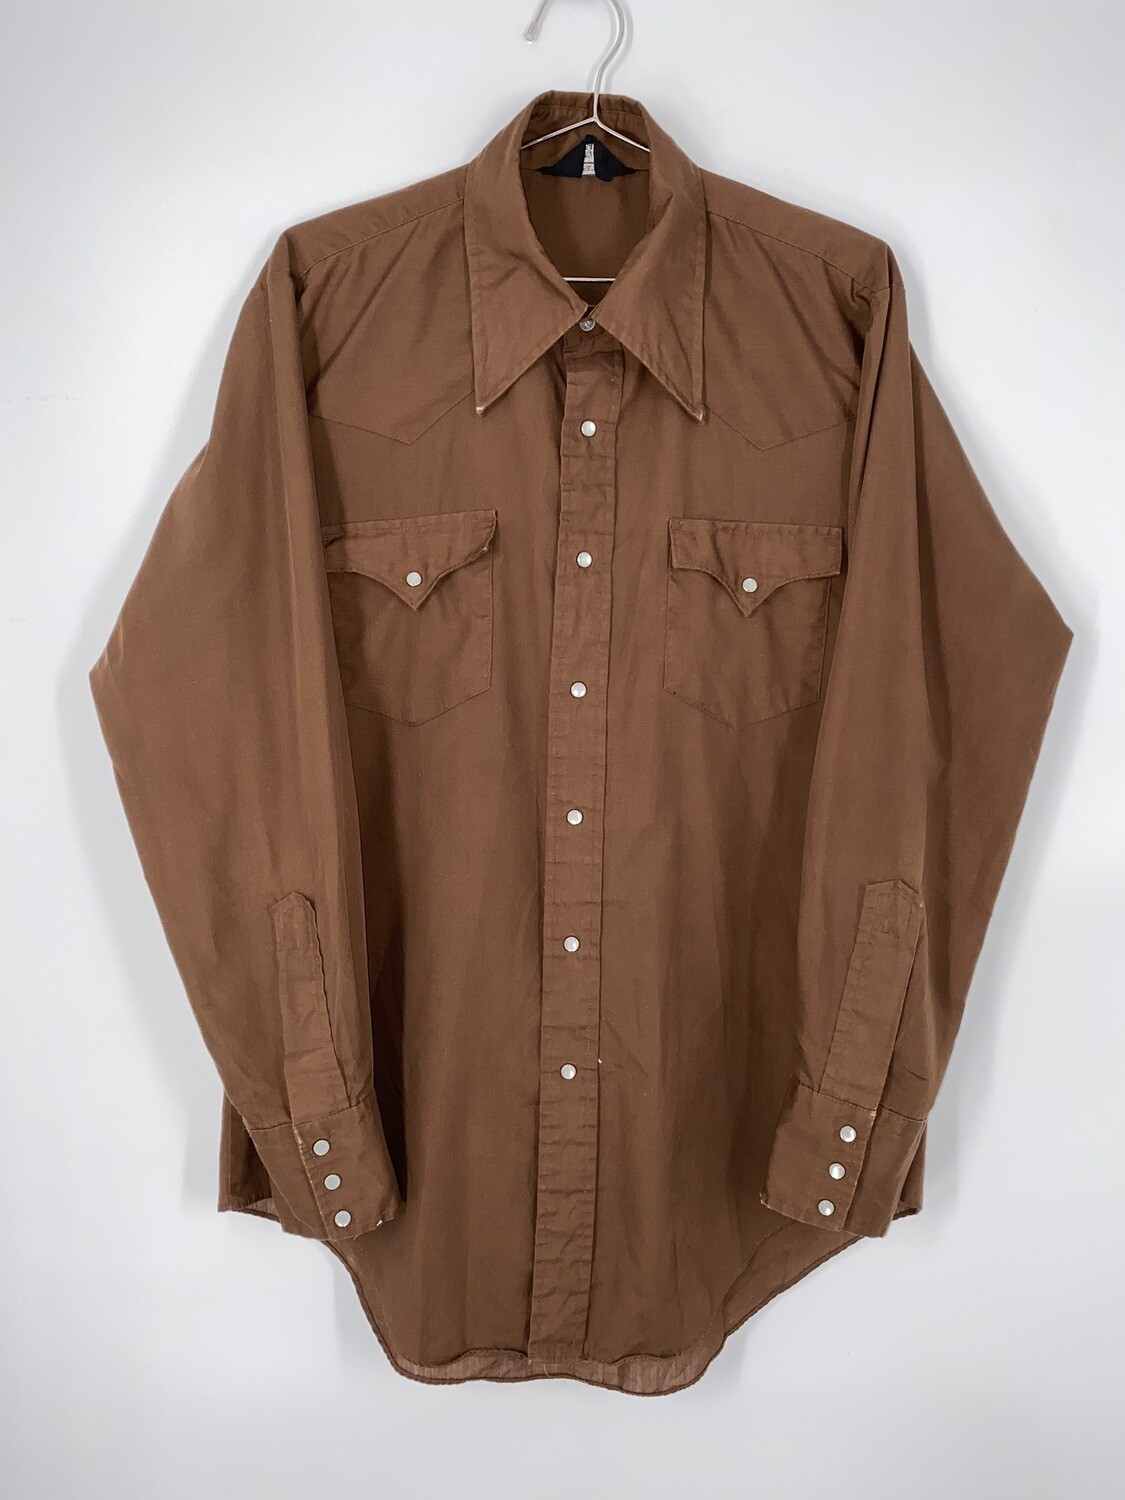 Sears Wester Wear Brown Button Up Size M